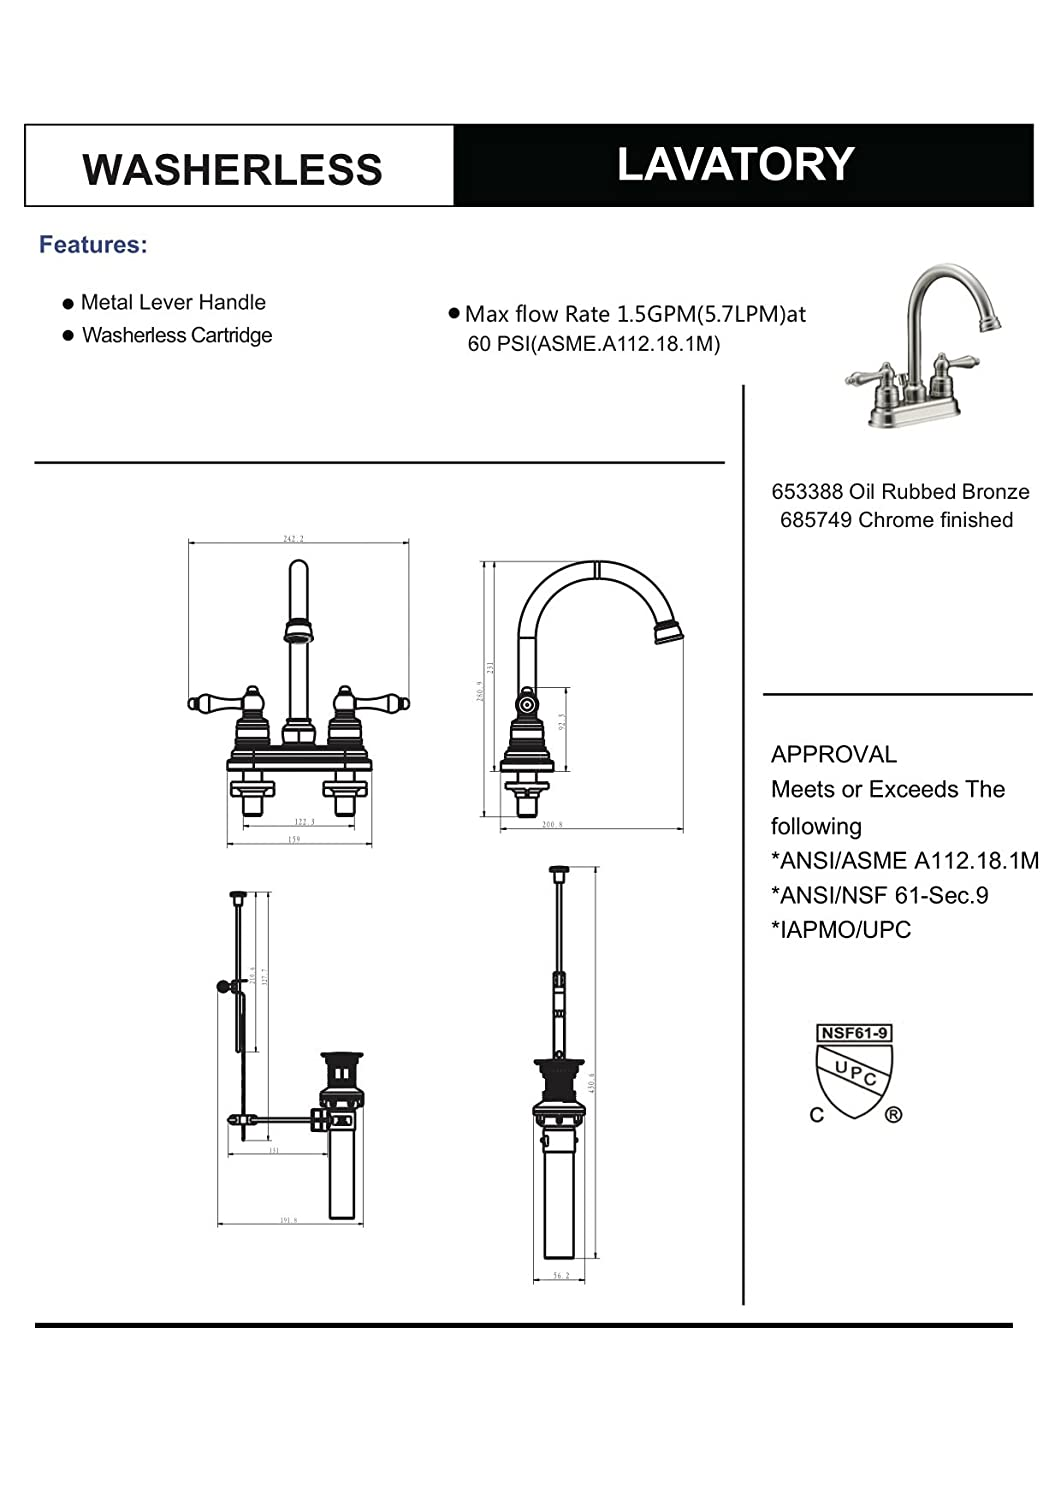 Designers Impressions 617430 Satin Nickel Two Handle Lavatory Bathroom Vanity Faucet Bathroom Sink Faucet with Matching Pop-Up Drain Trim Assembly